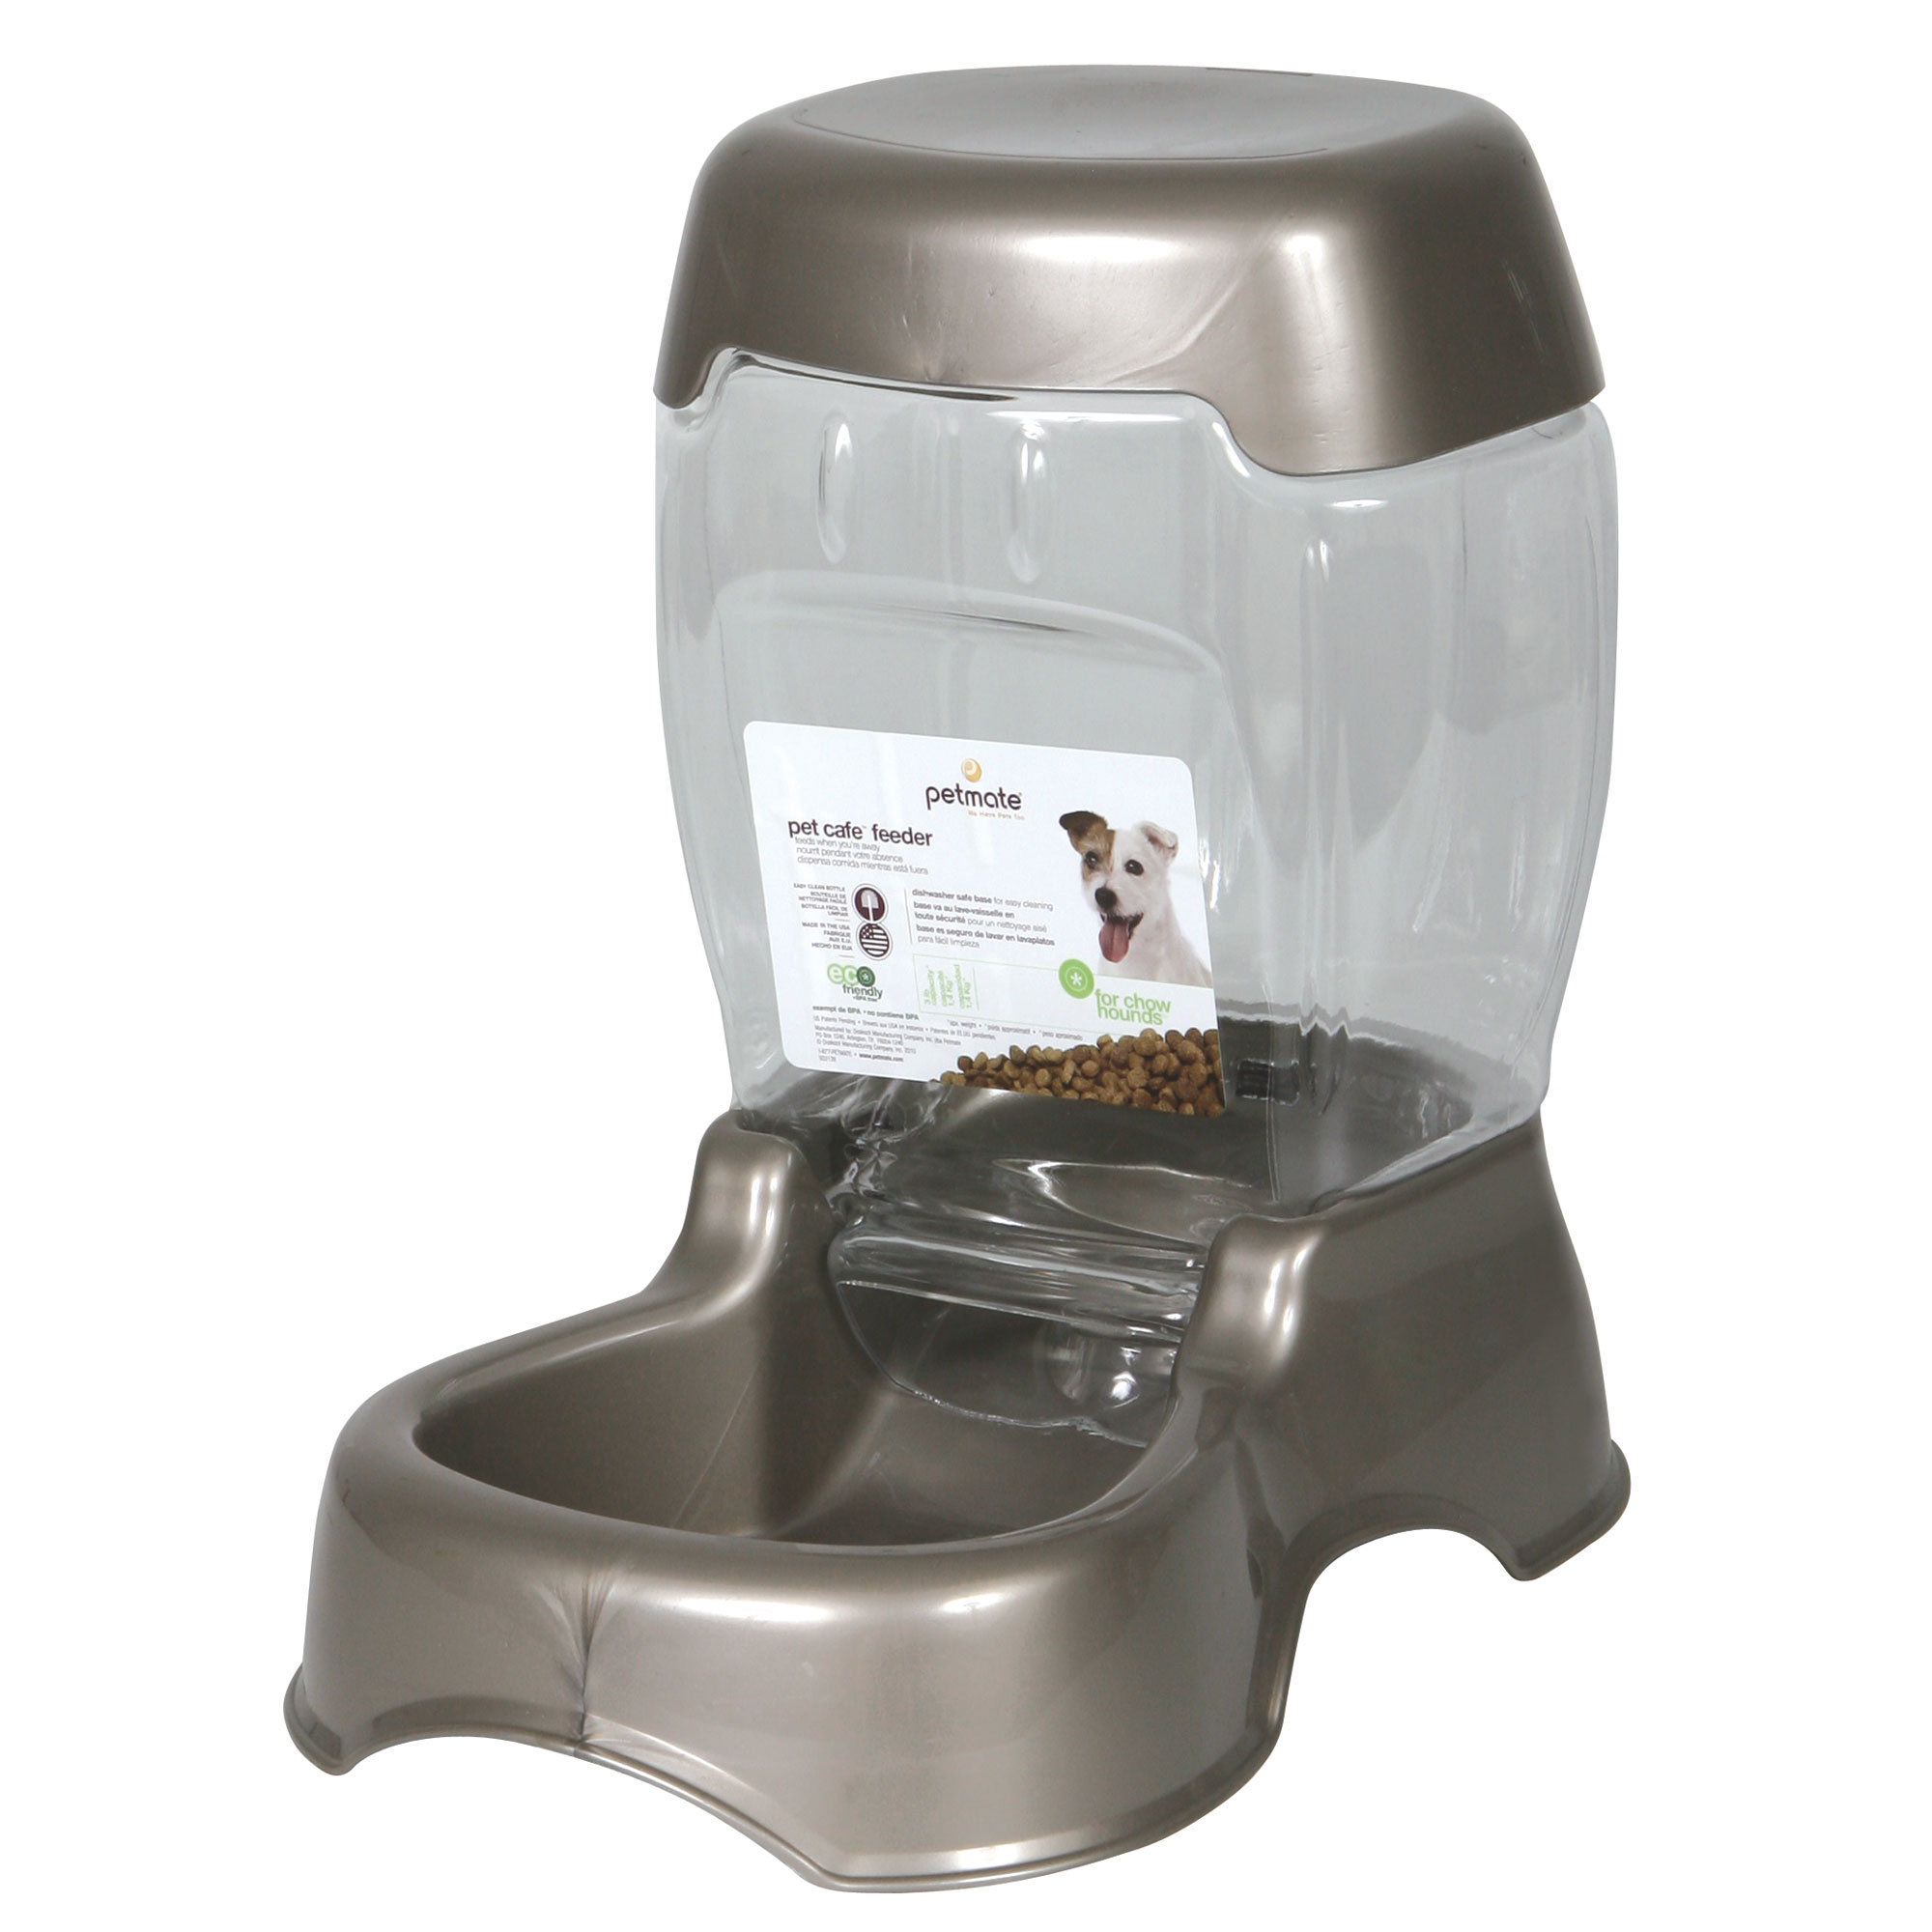 water image helpful pet self in feeder cafe heyrex product rated dog best filling pcr liter for com fountains reviews bowl petmate torus amazon dogs customer